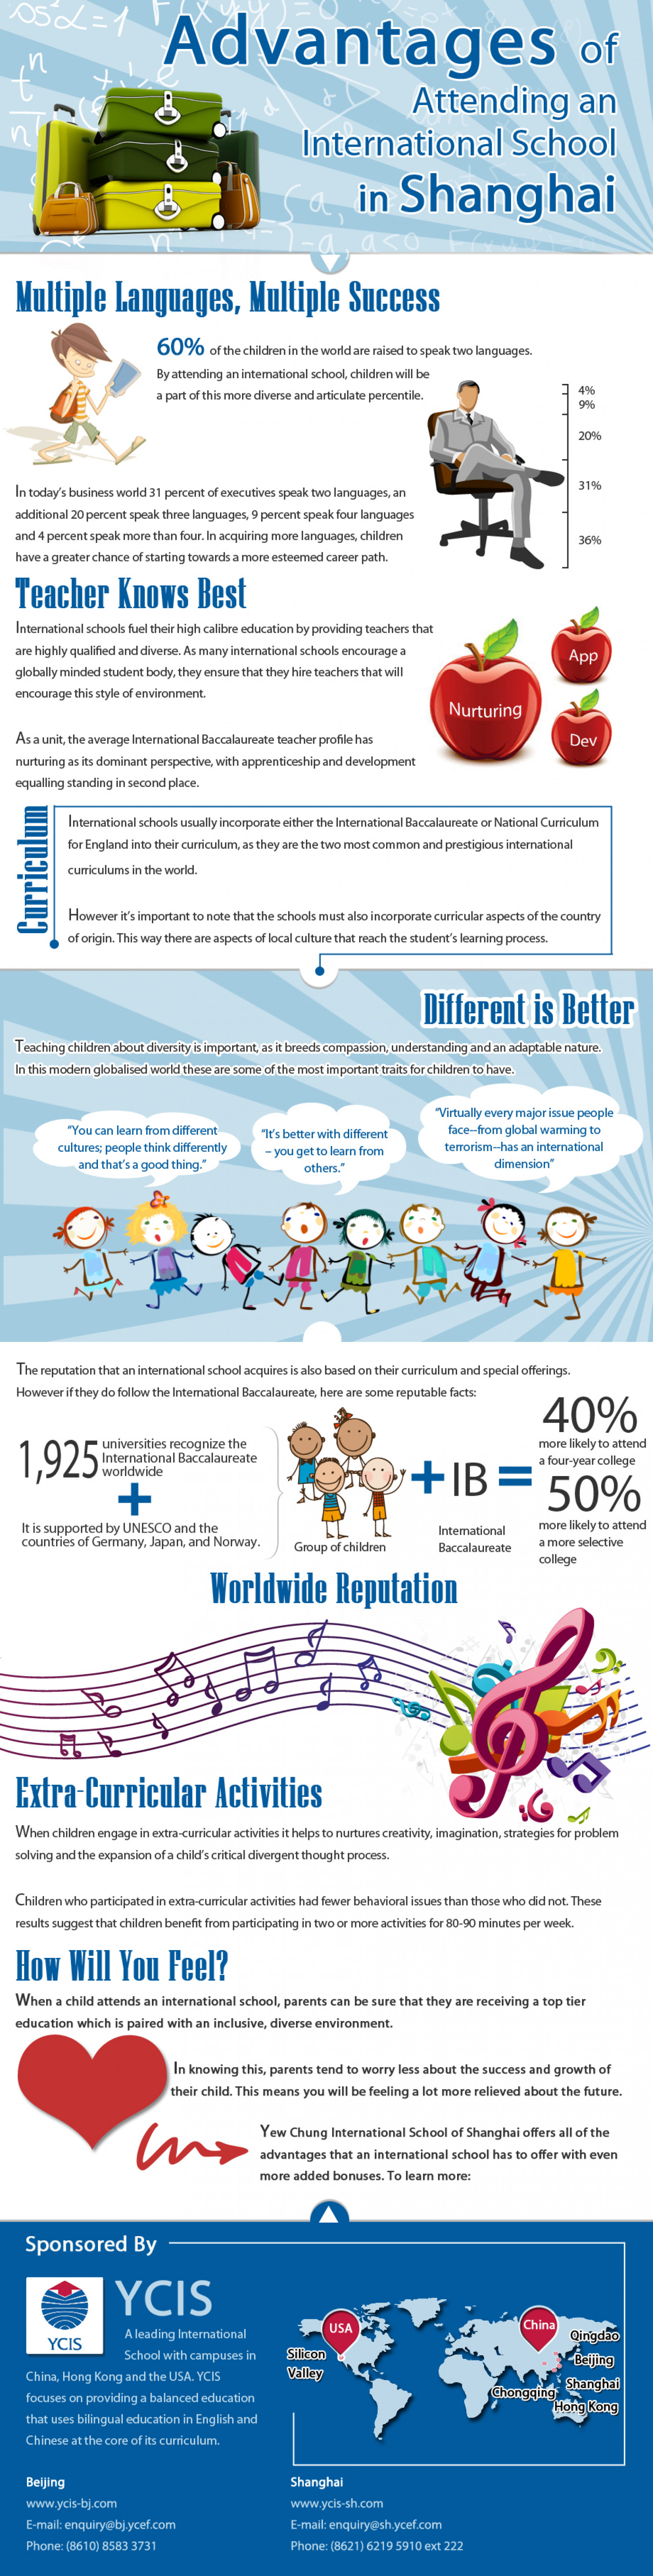 Advantages of Attending an International School in Shanghai Infographic